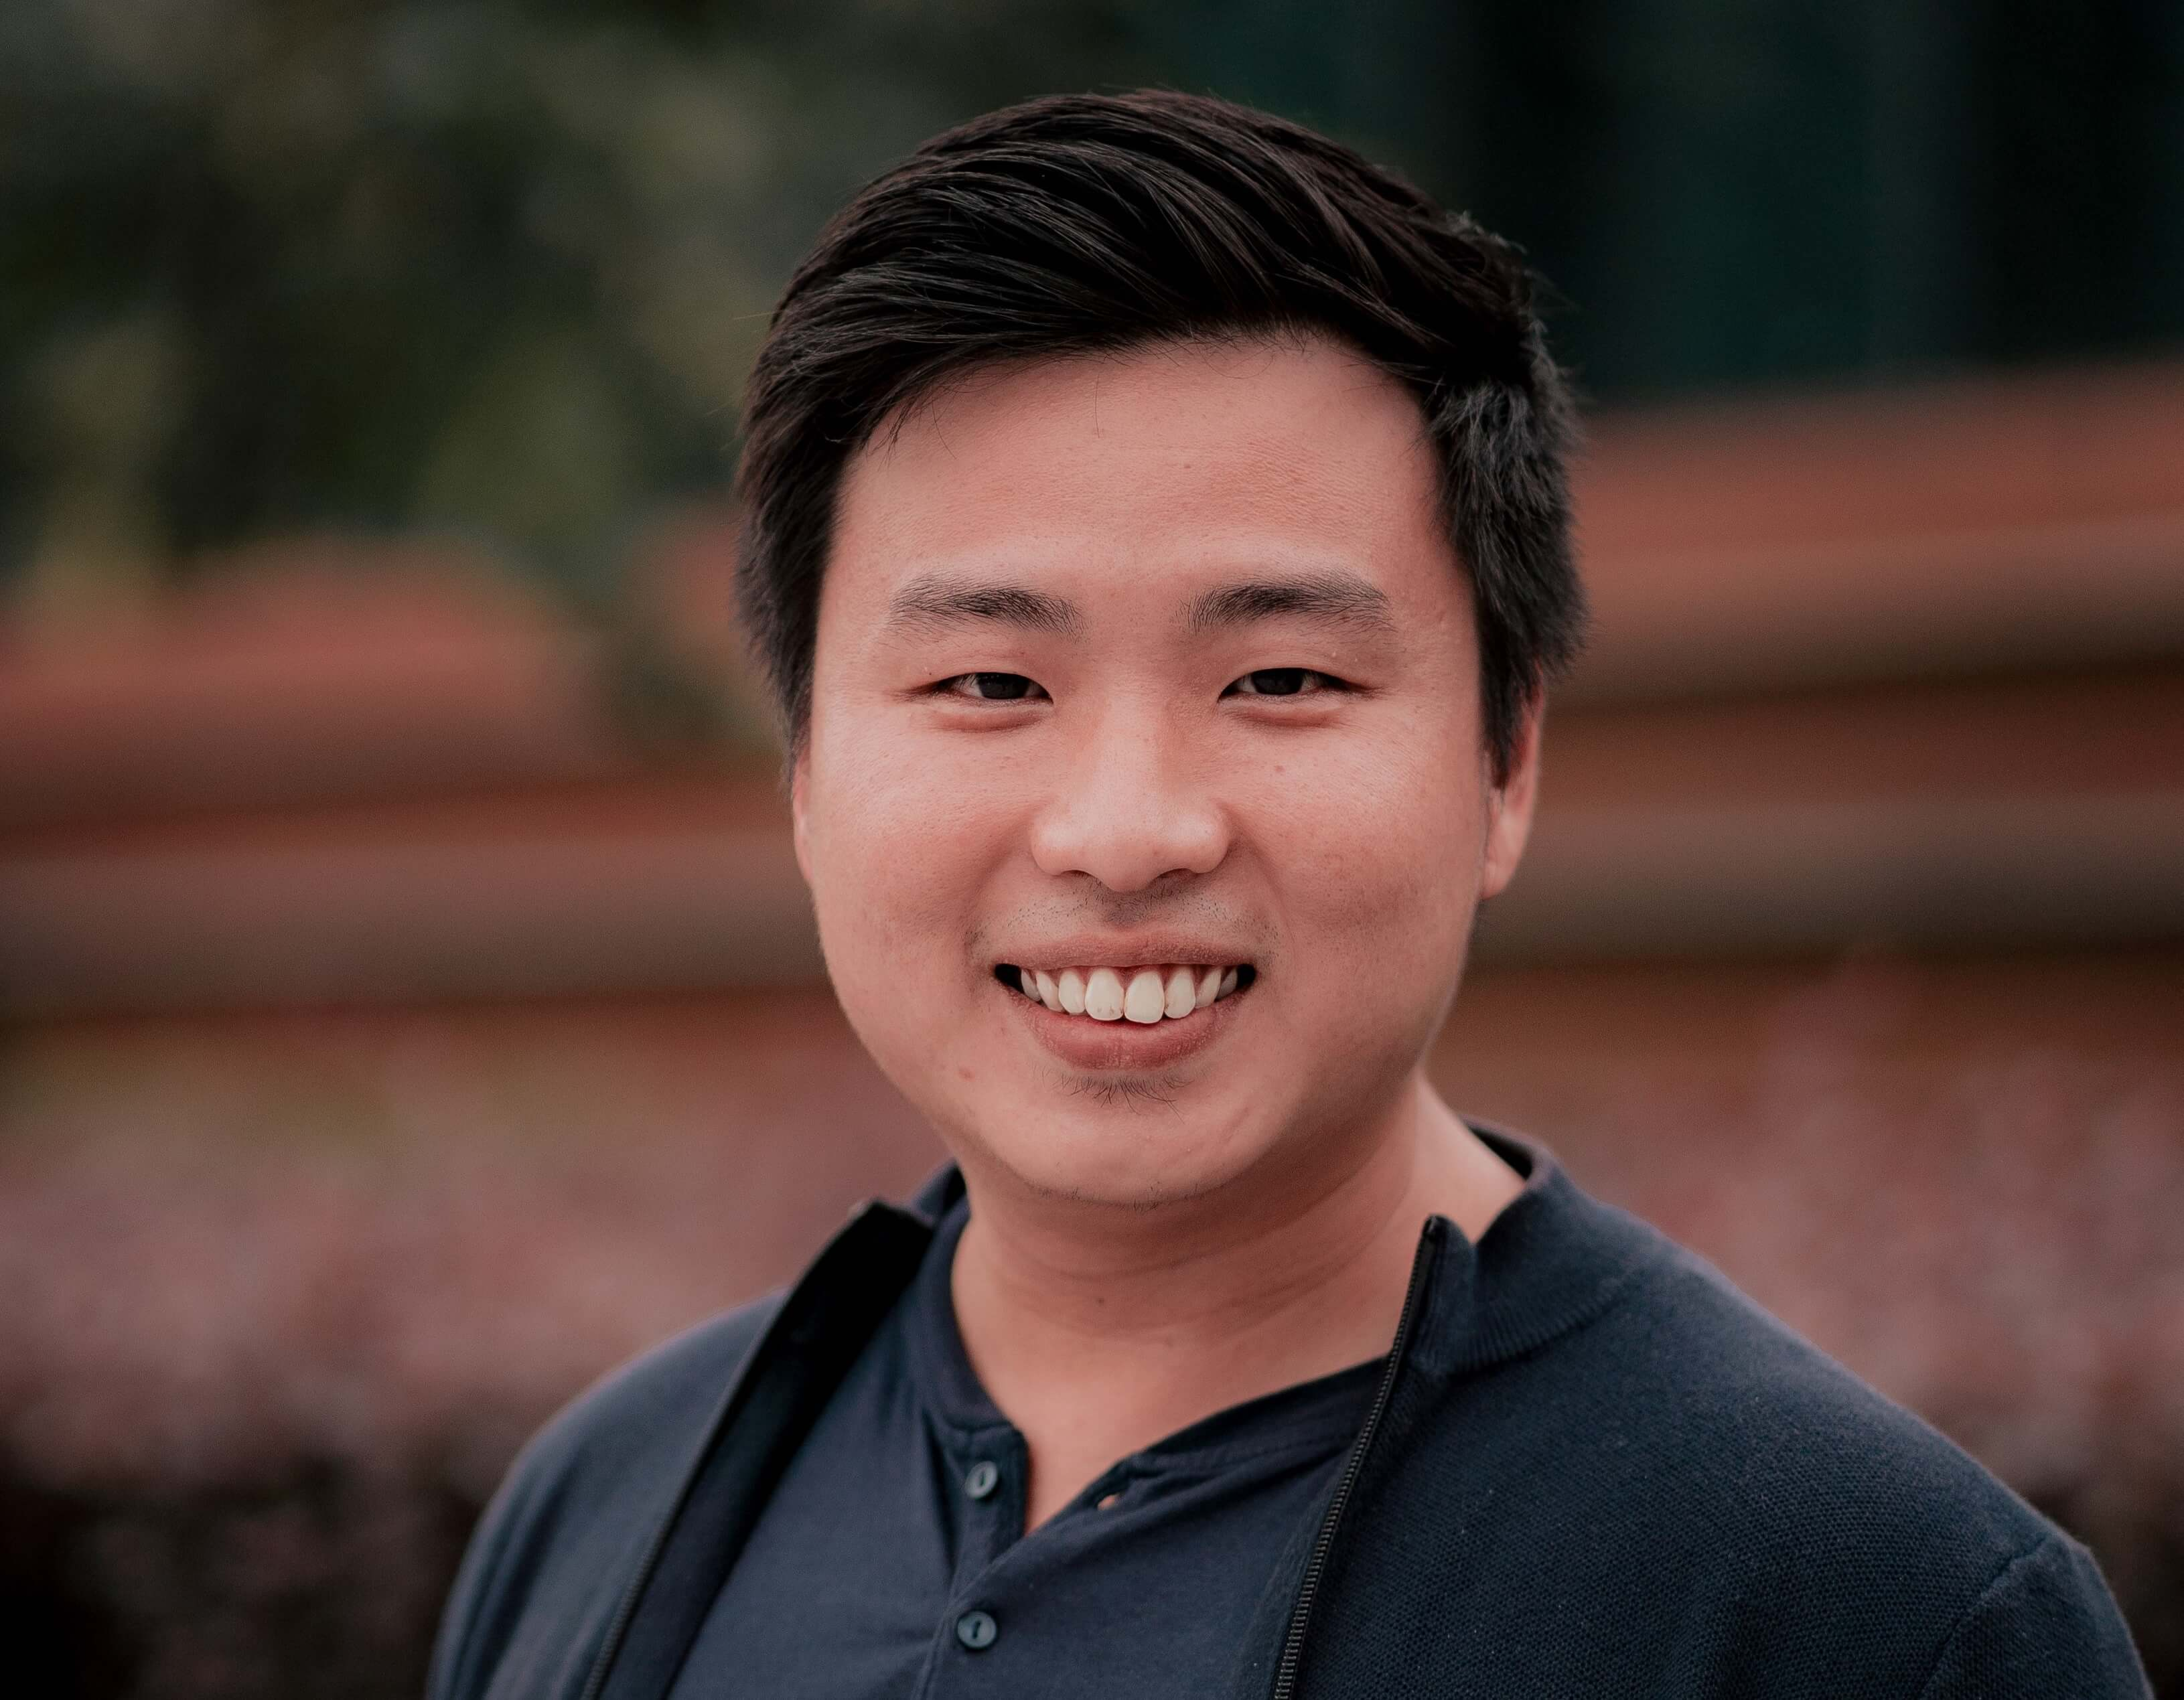 Forbes 30 under 30 icon: From sociology graduate to blockchain accelerator cofounder